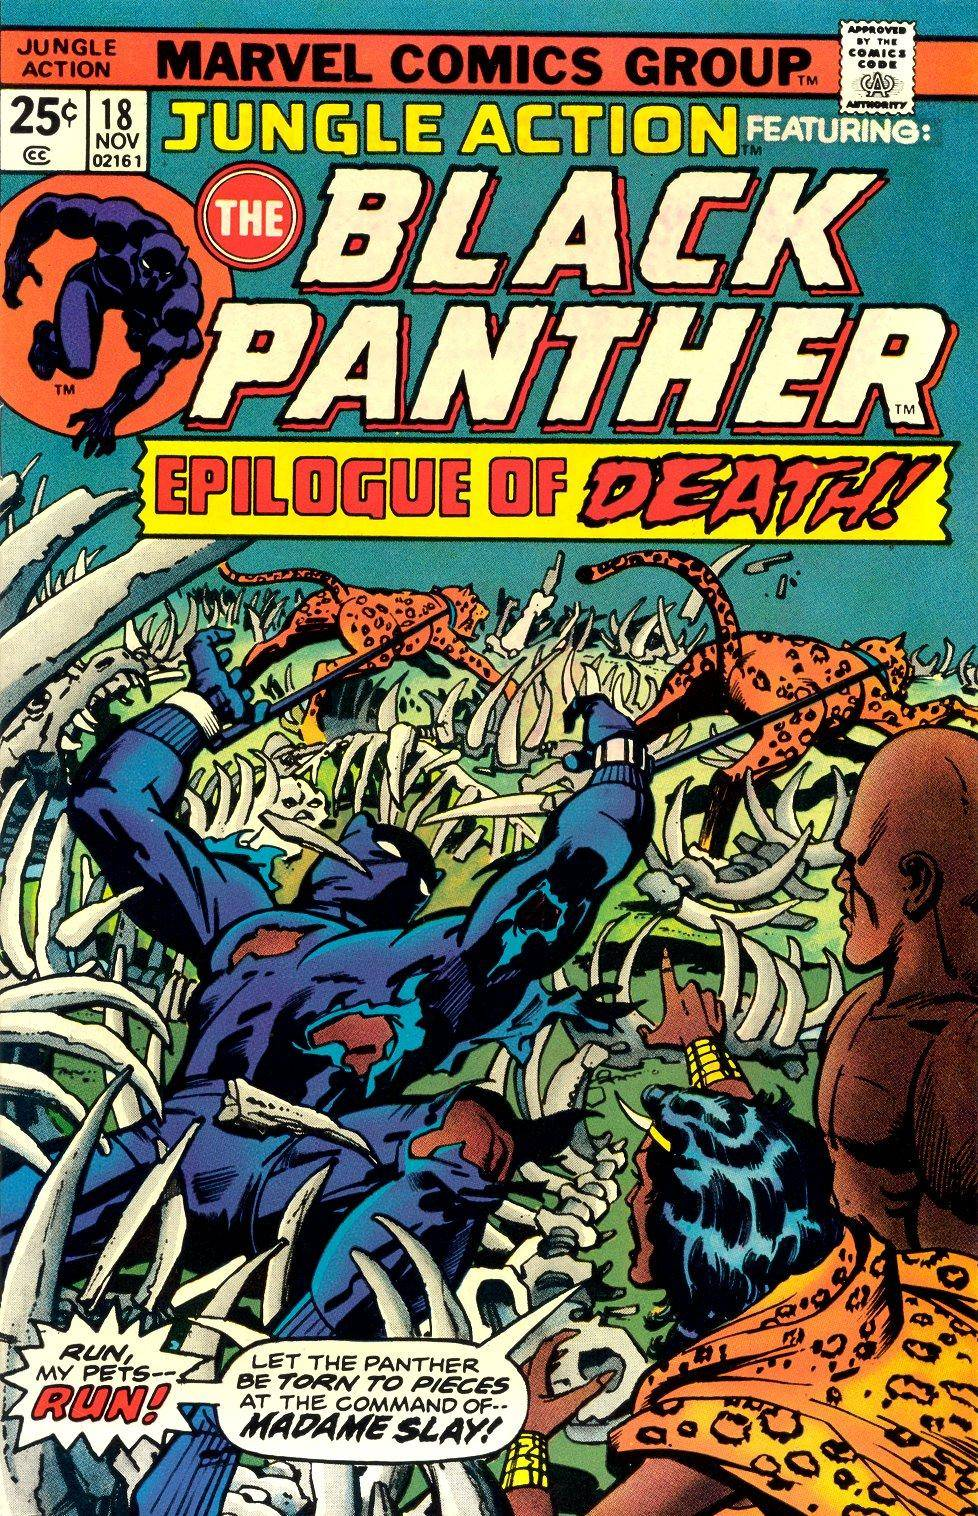 Jungle Action v2 018 featuring Black Panther